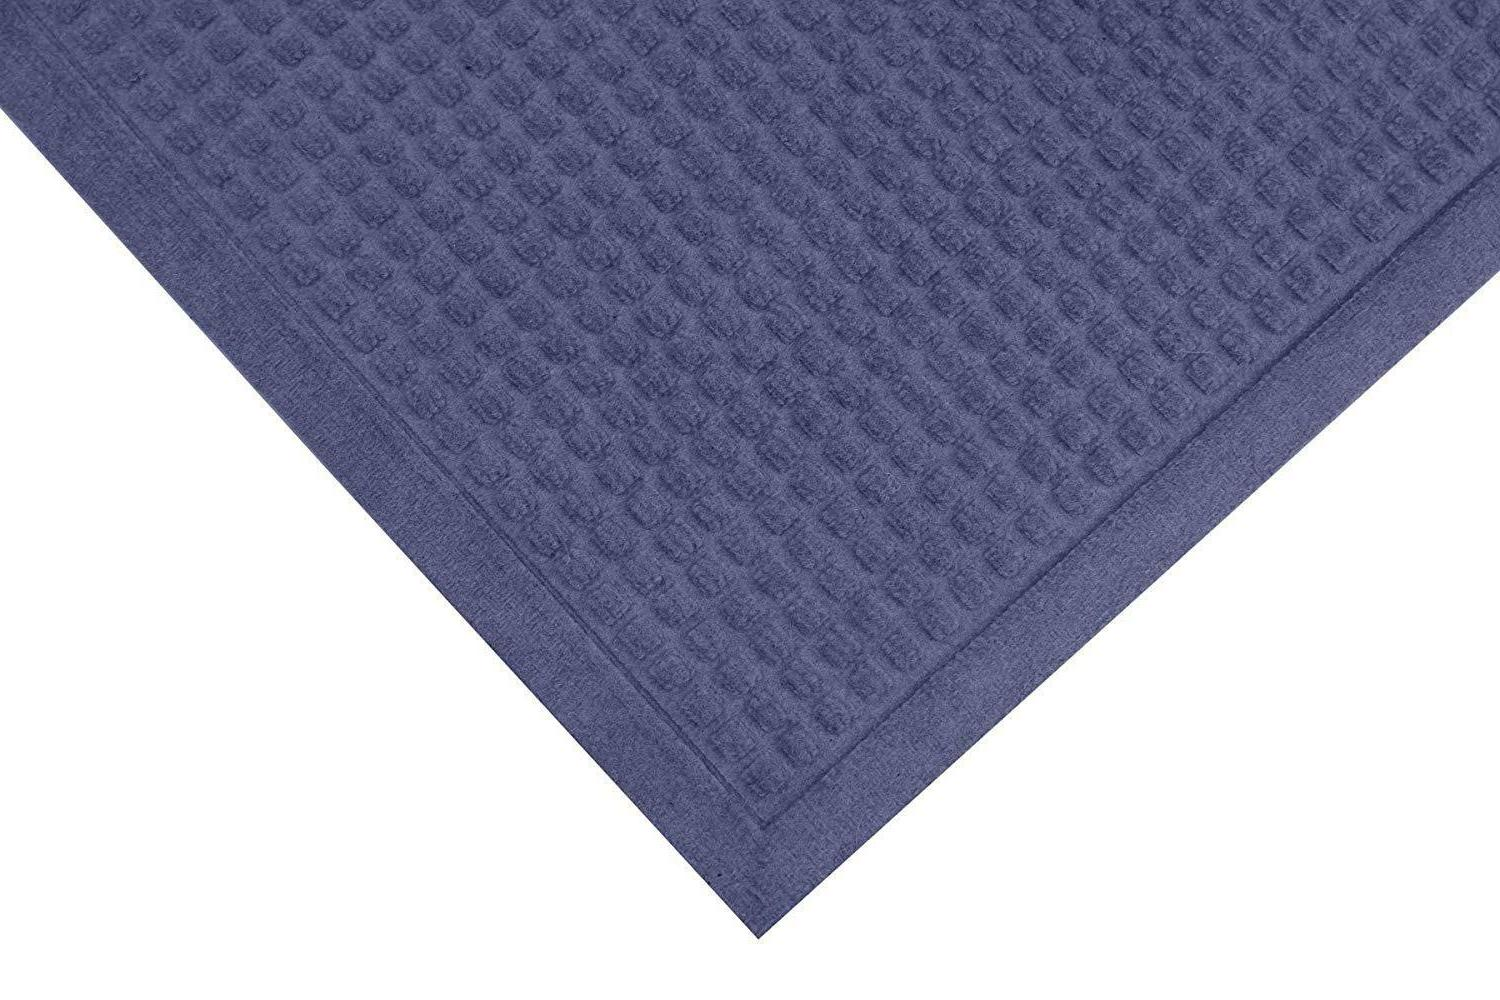 Kempf Outdoor Mat, Sizes